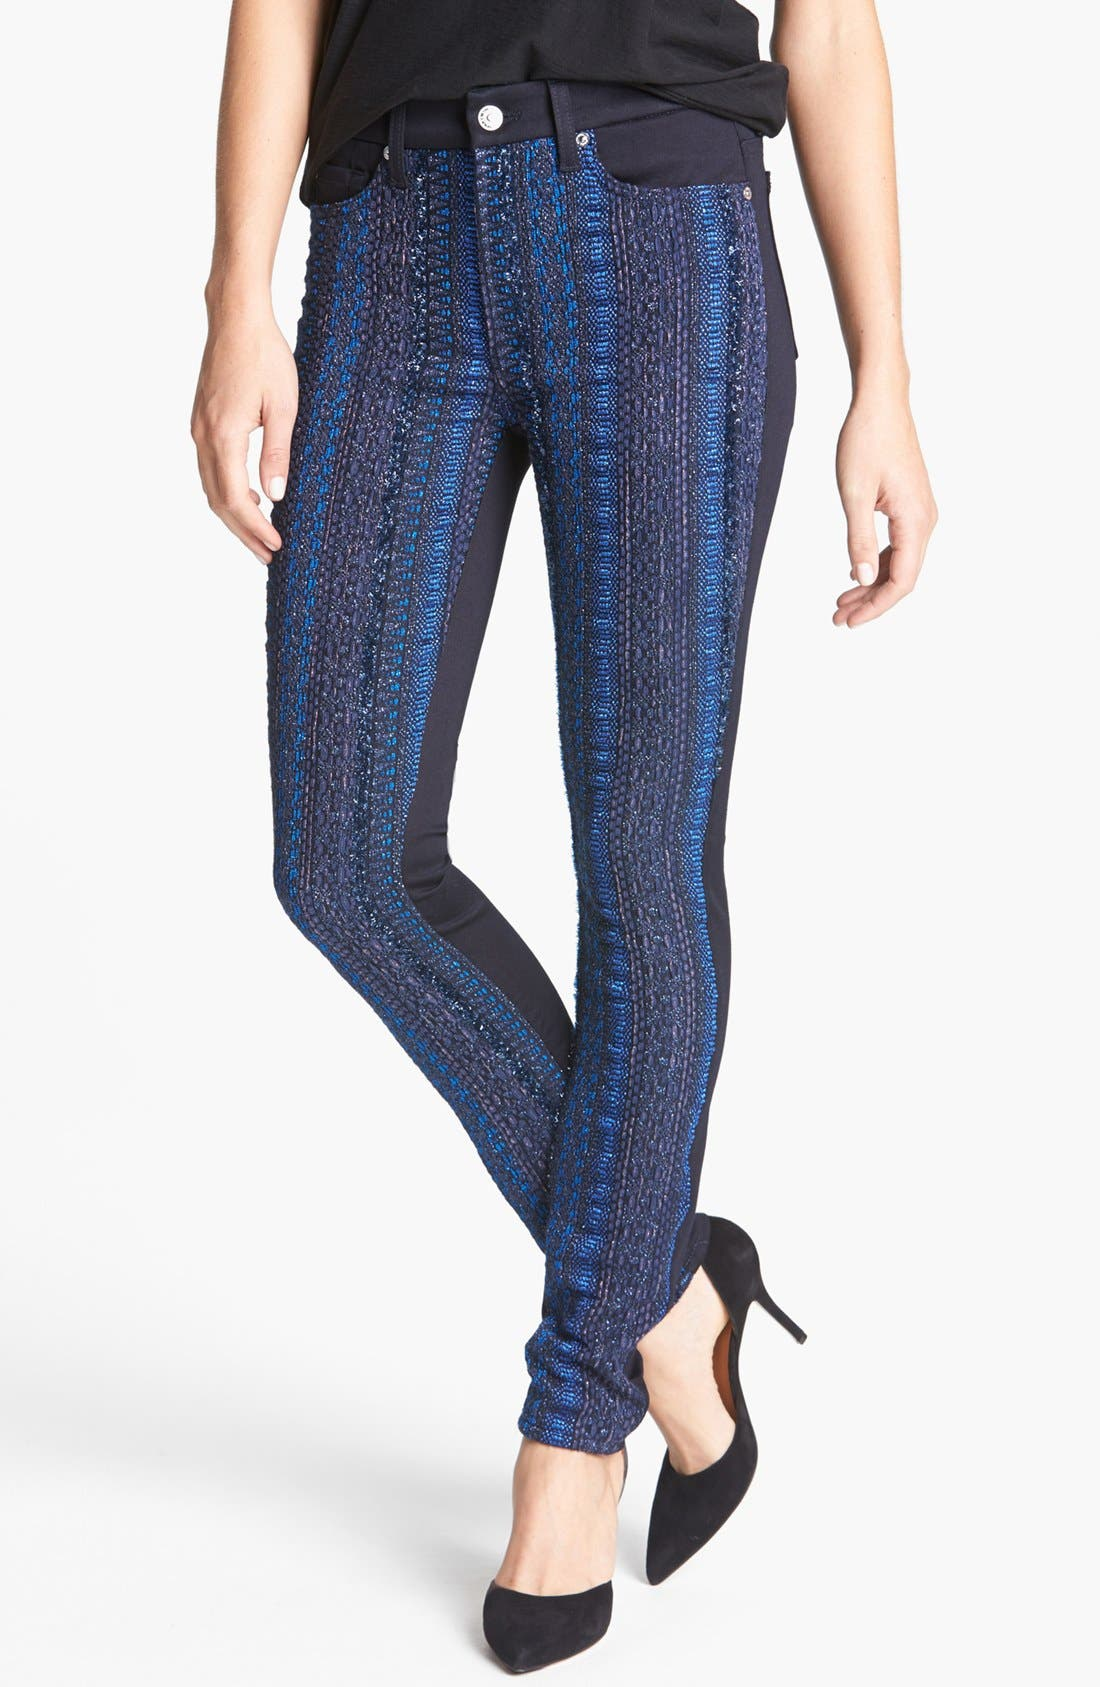 Alternate Image 1 Selected - 7 For All Mankind® 'Malhia Kent - The Pieced Skinny' Jacquard Jeans (Blue Metallic Stripe)